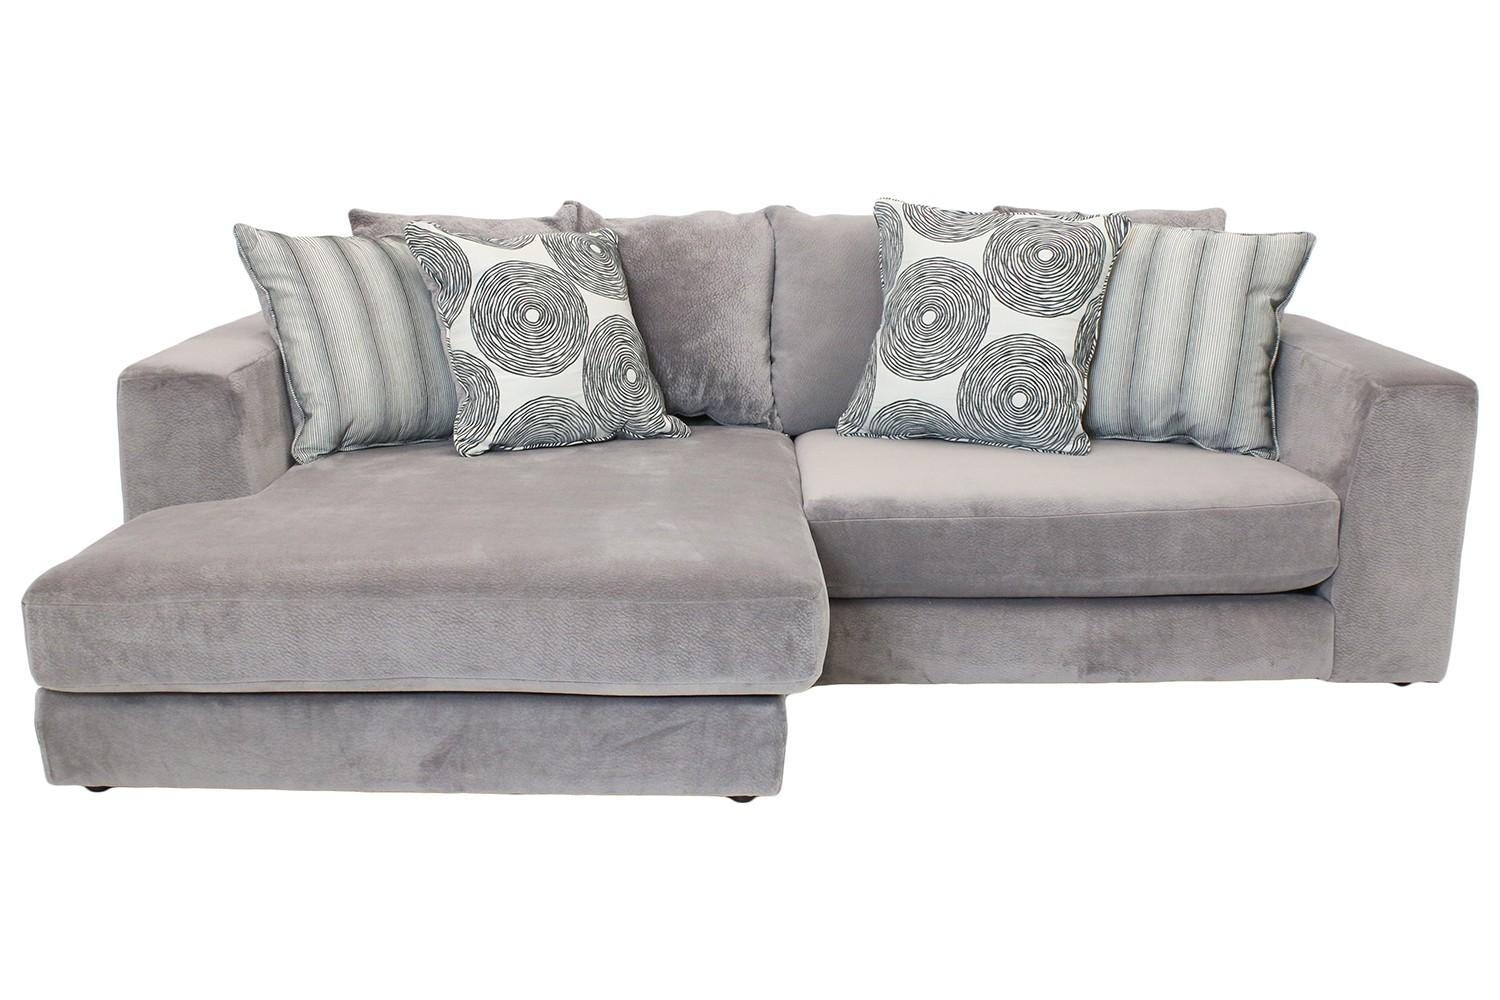 Cloud Graphite Sectional | Mor Furniture For Less With Regard To Cloud Sectional Sofas (Image 1 of 20)